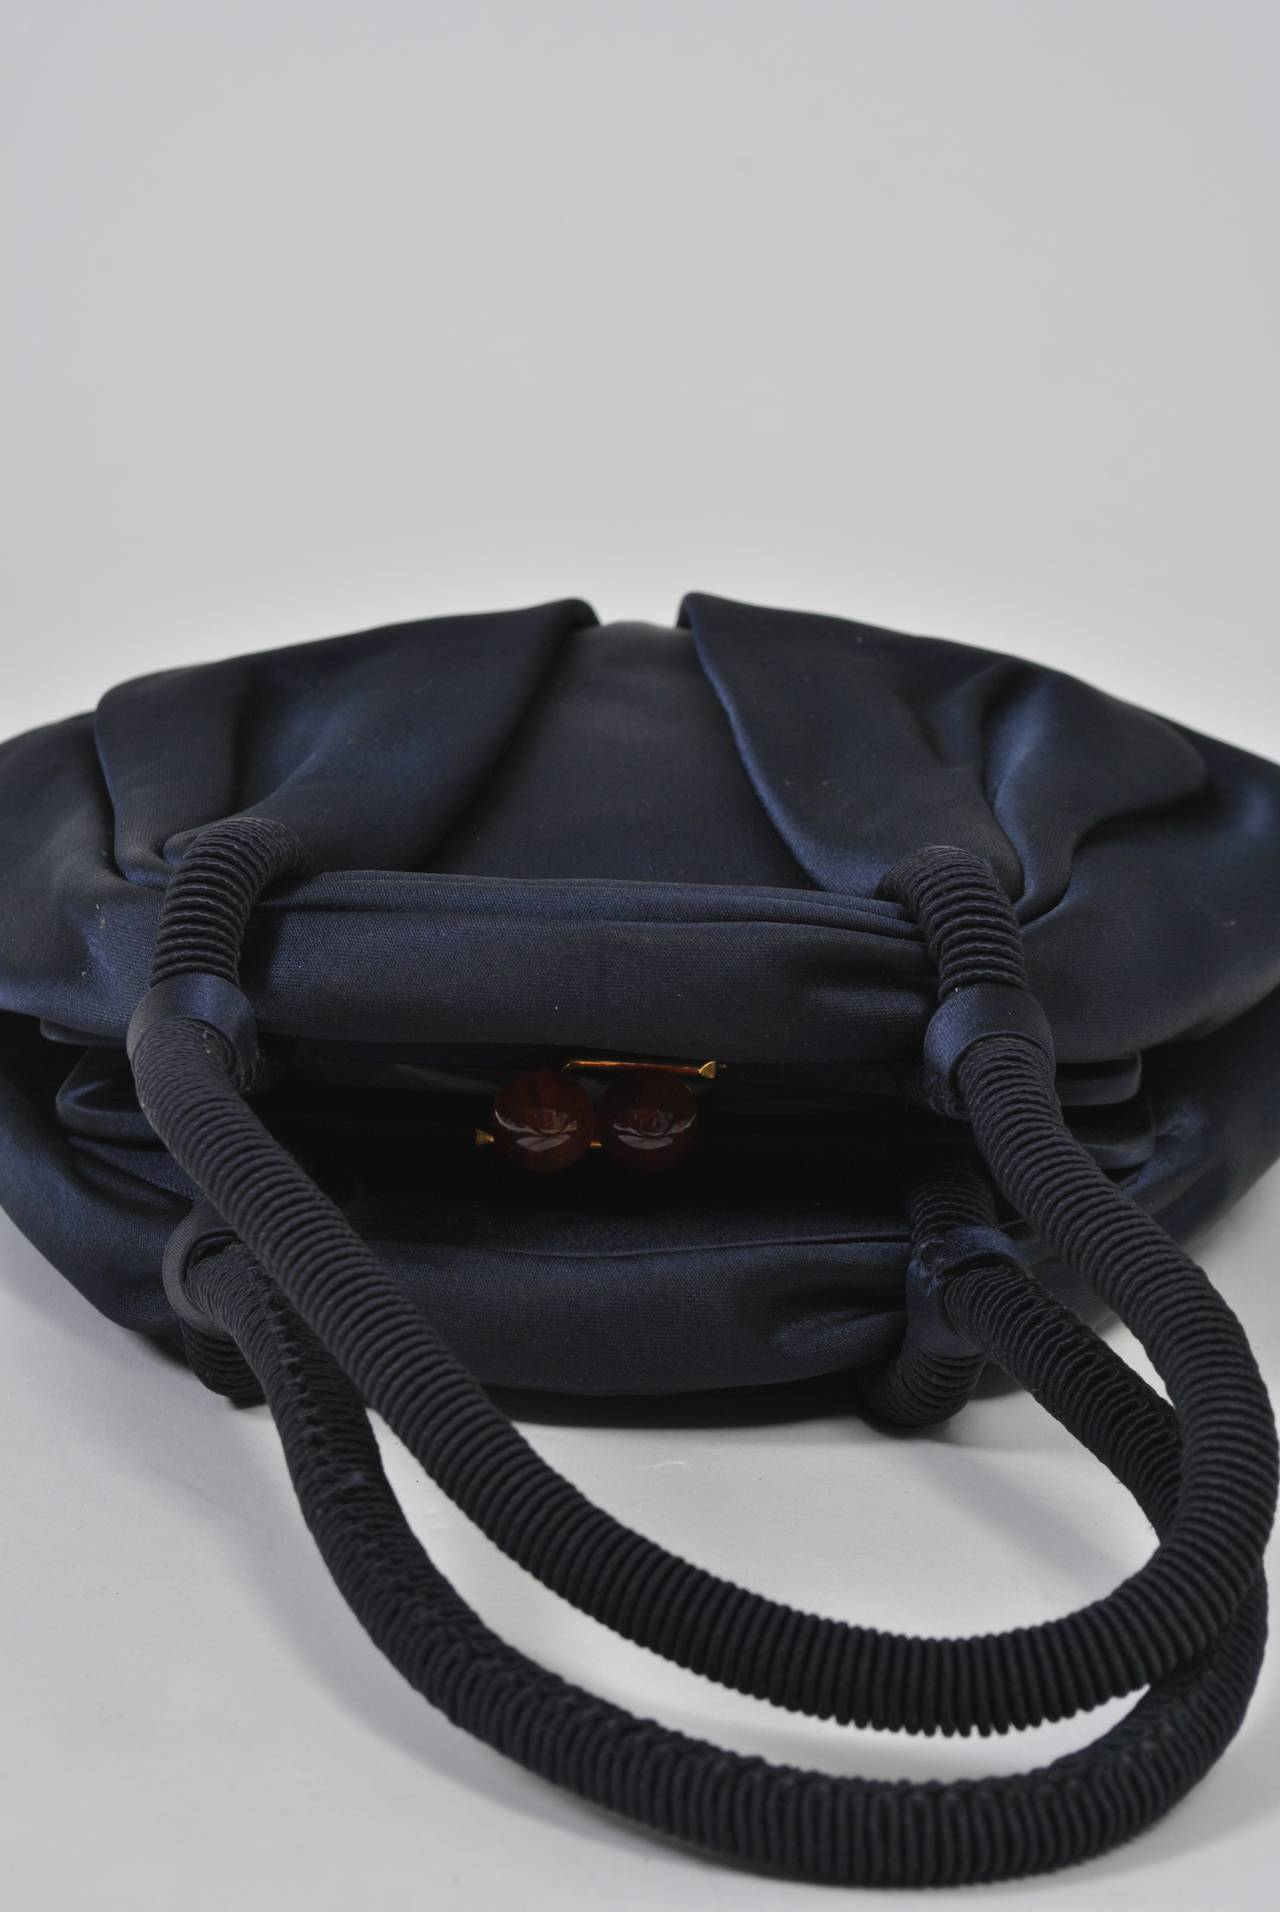 Navy Satin Purse with Tortoise Kiss Clasp, Paris 3